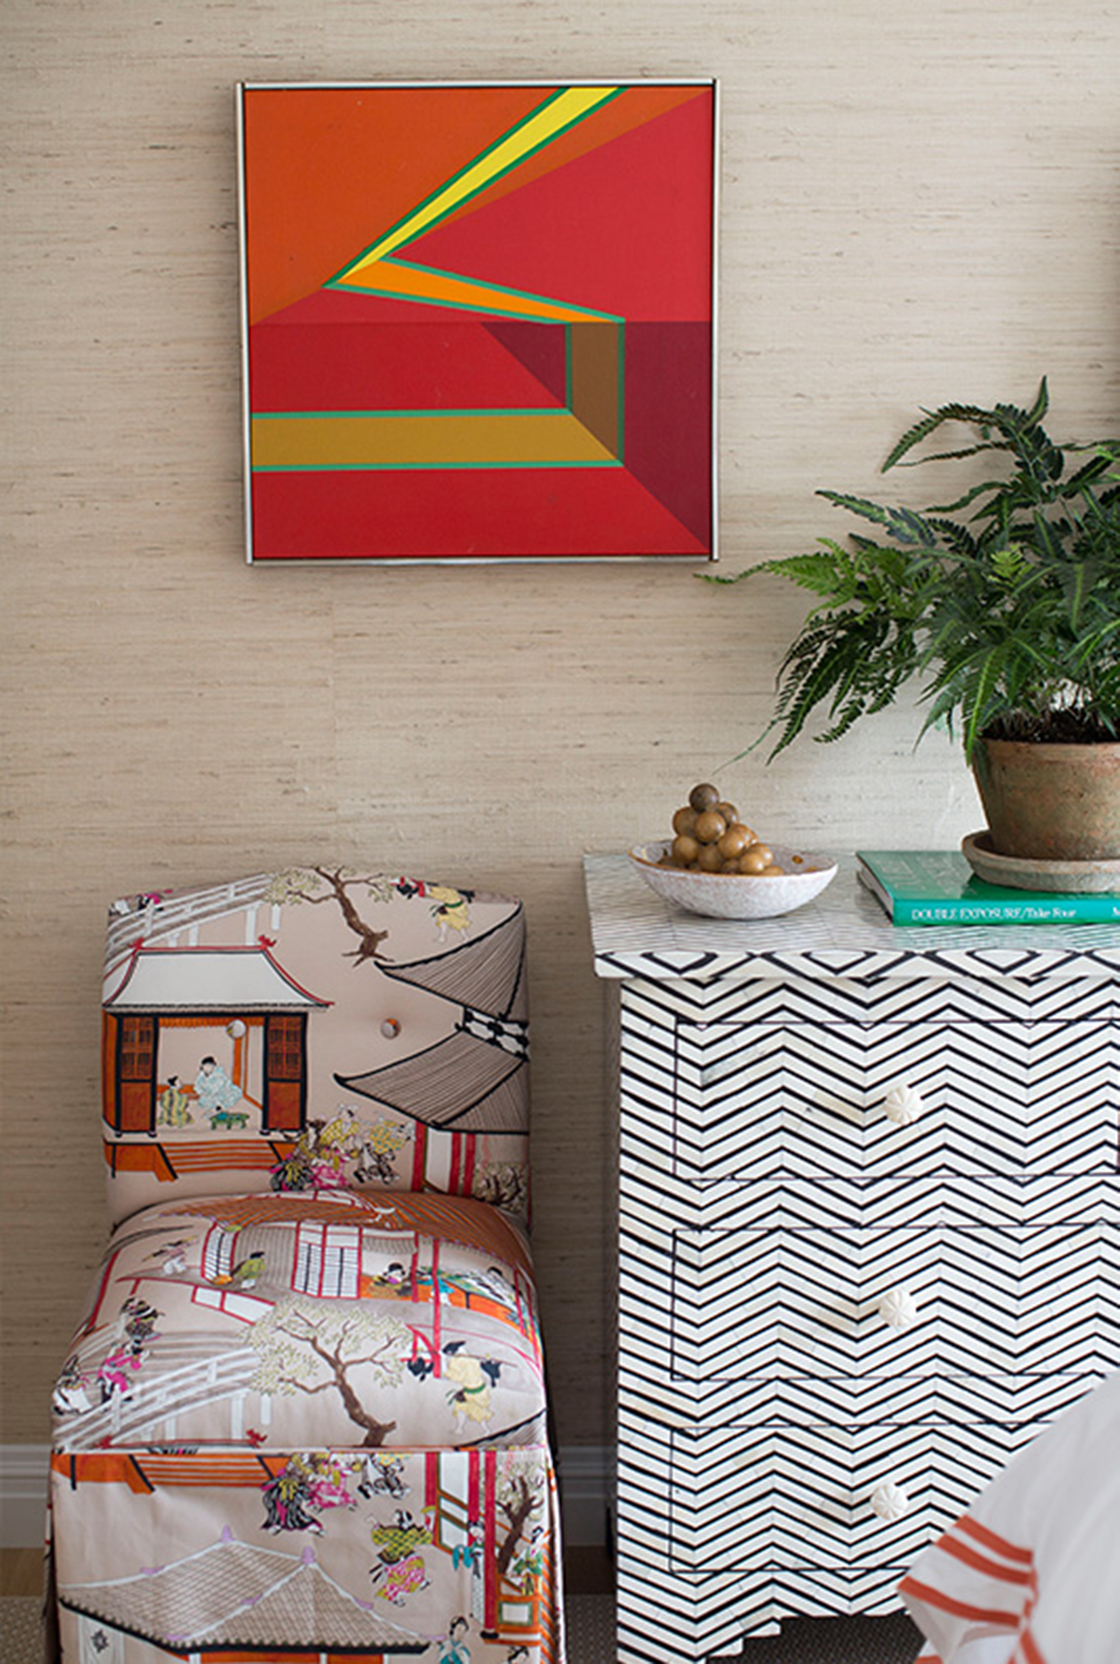 6 Smashing Home Decor Ideas By Katie Rosenfeld To Inspire You